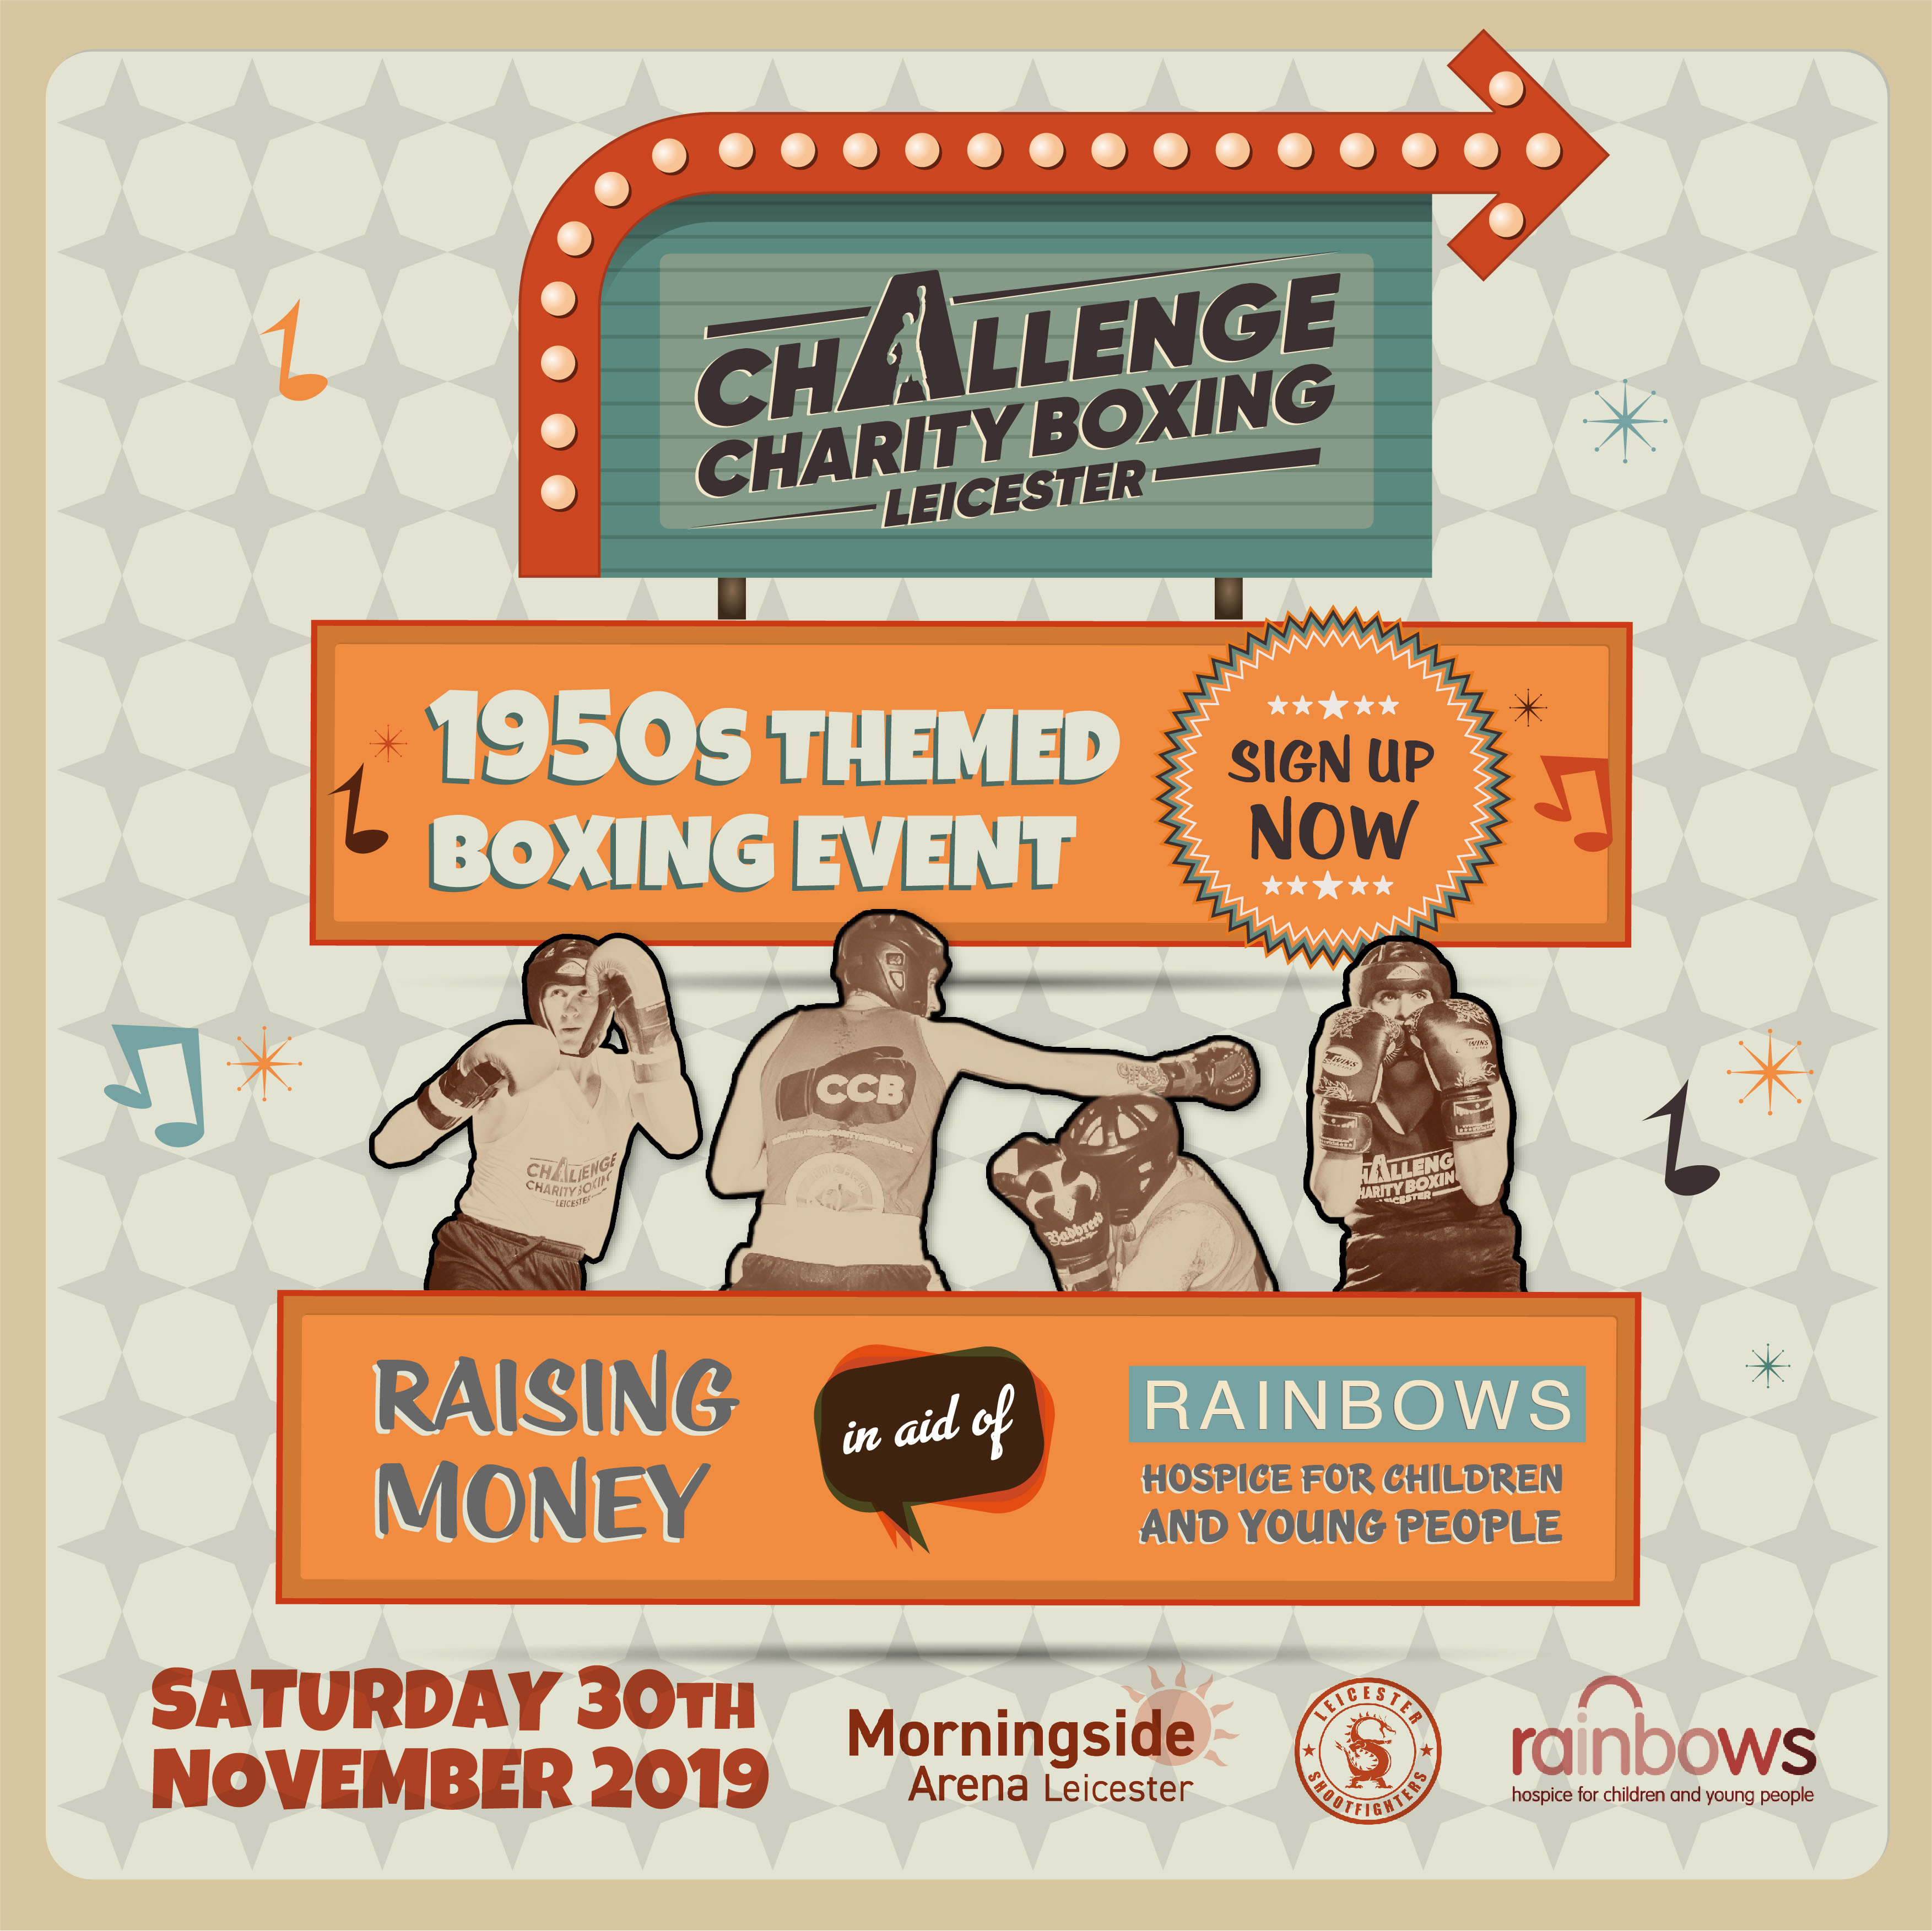 Challenge Charity Boxing Poster